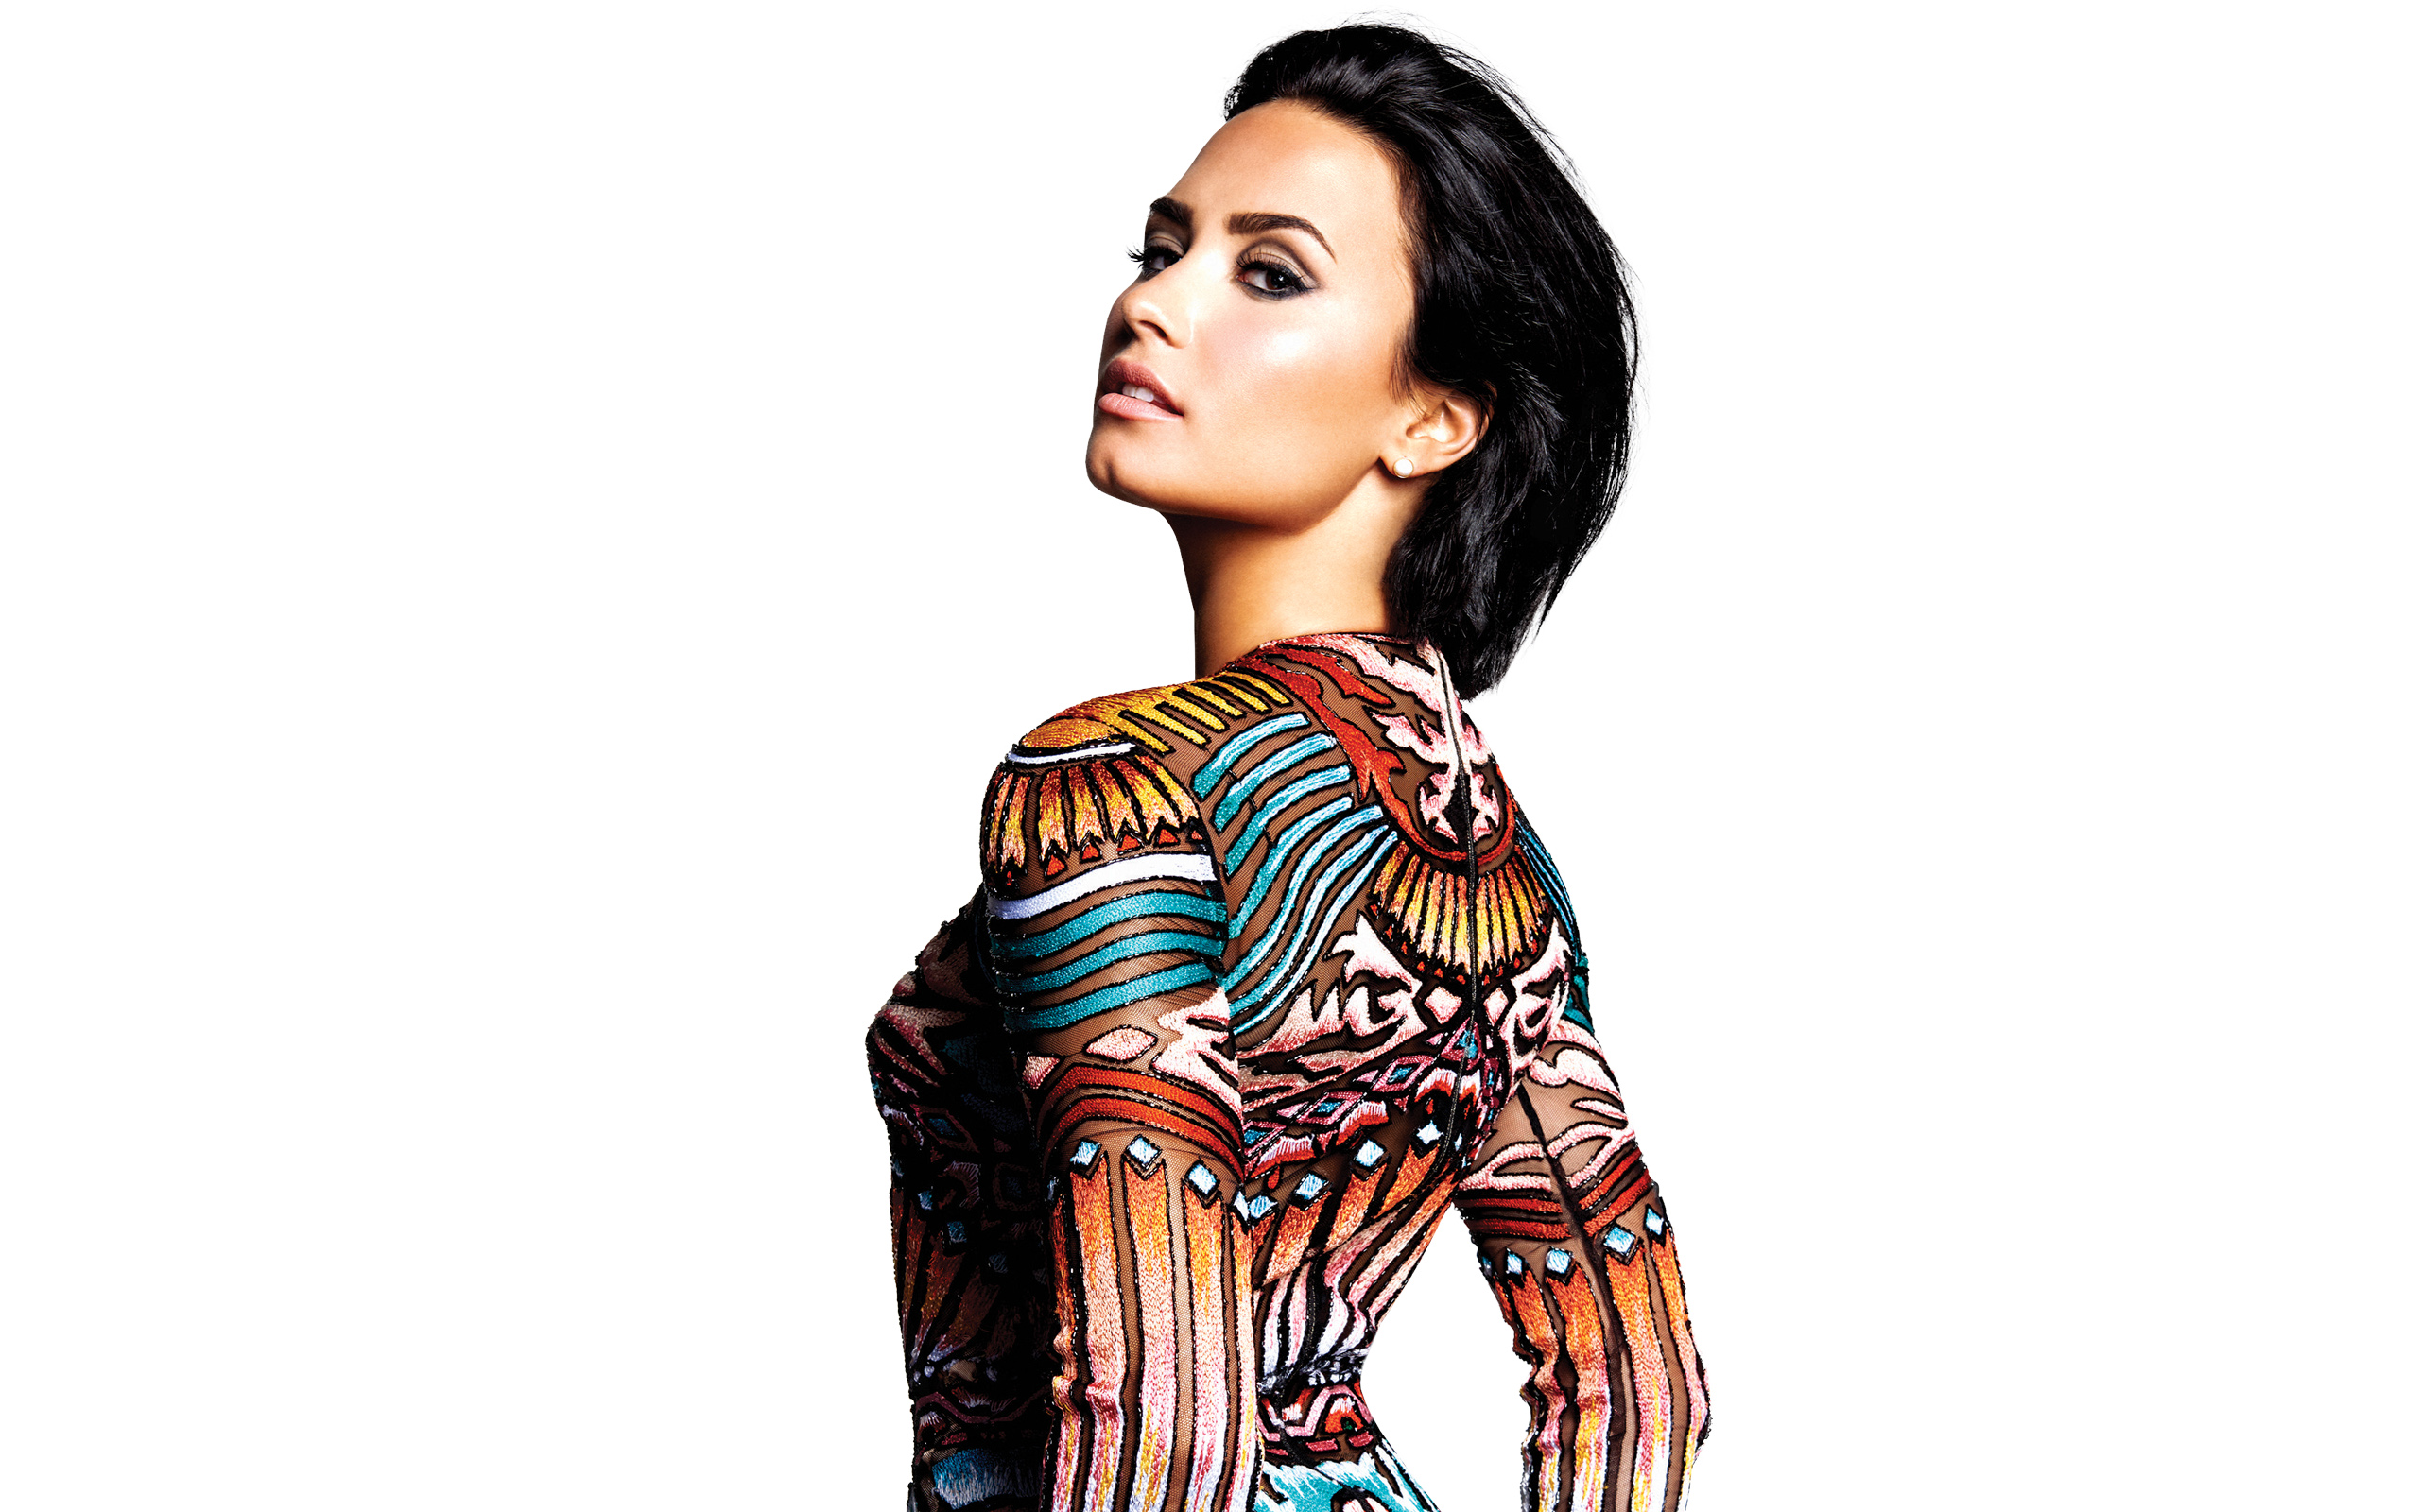 Demi Lovato Confident 2015 Wallpapers HD Wallpapers 2560x1600